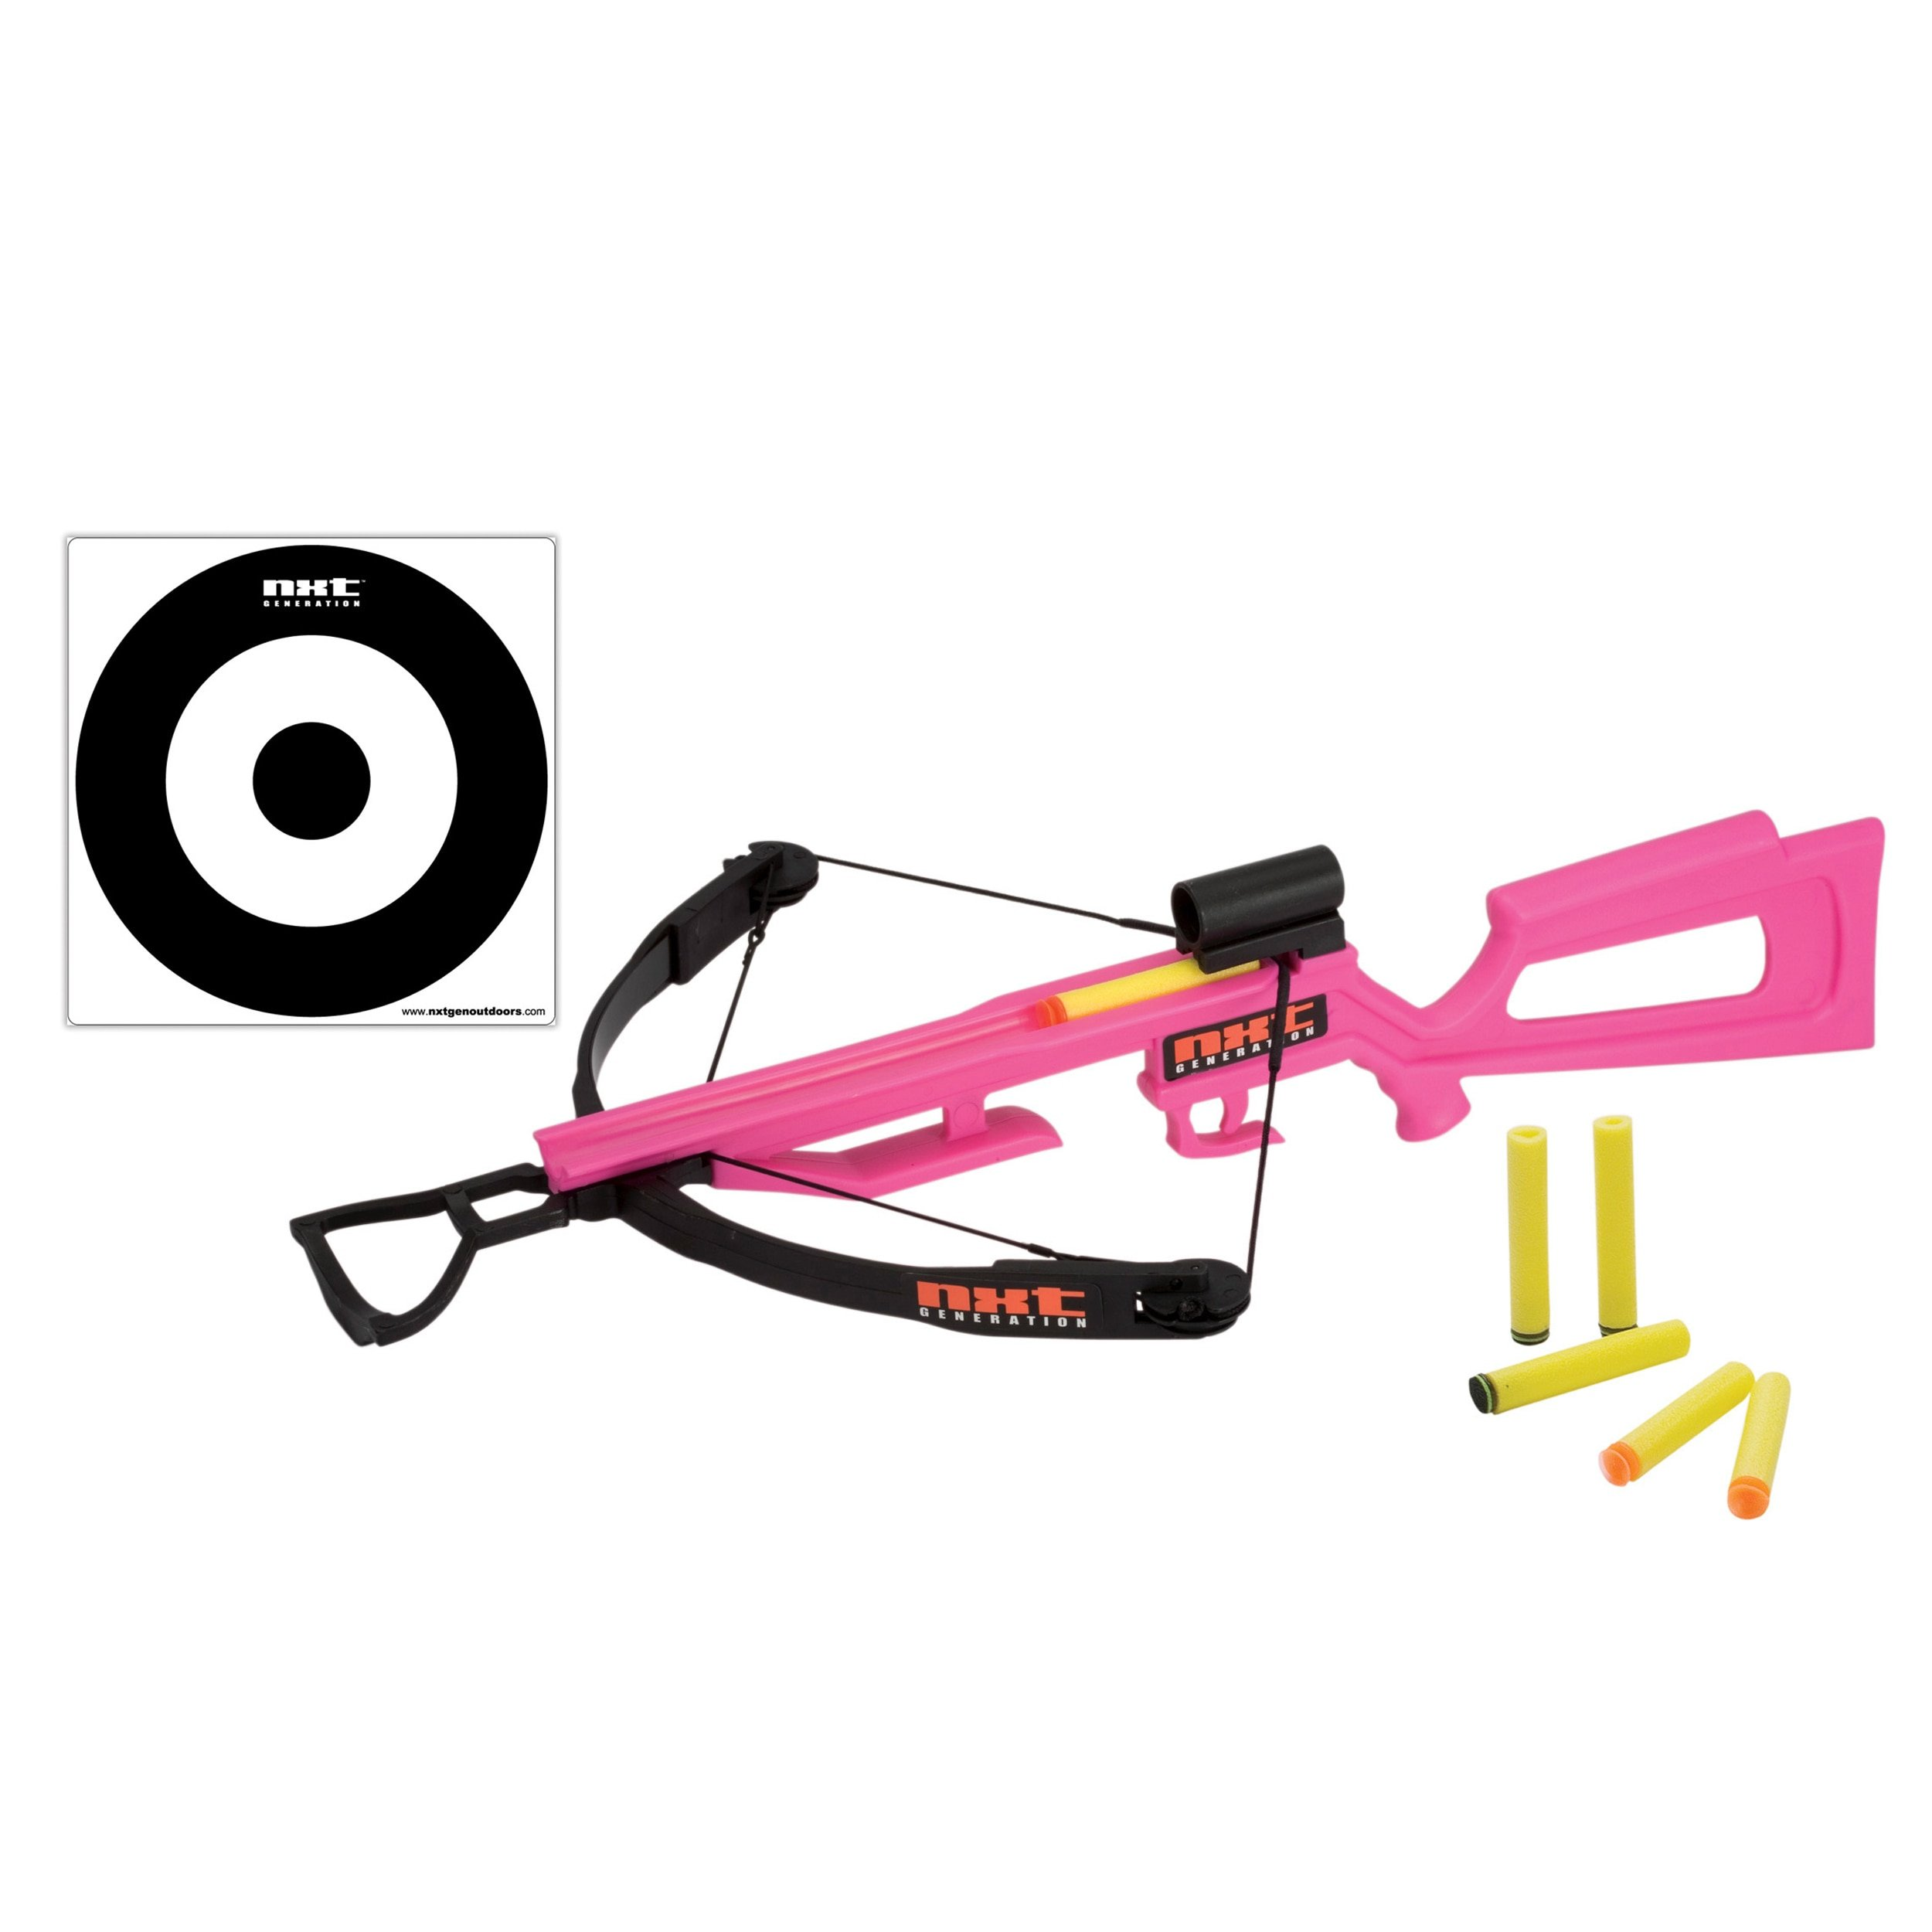 NXT Generation Crossbow and Target Kit - Accurate Crossbow Hunting Target Practice and Play set for Kids - Comes with Crossbow, Target, VELCRO, and Suction Cup Foam Dart Projectiles